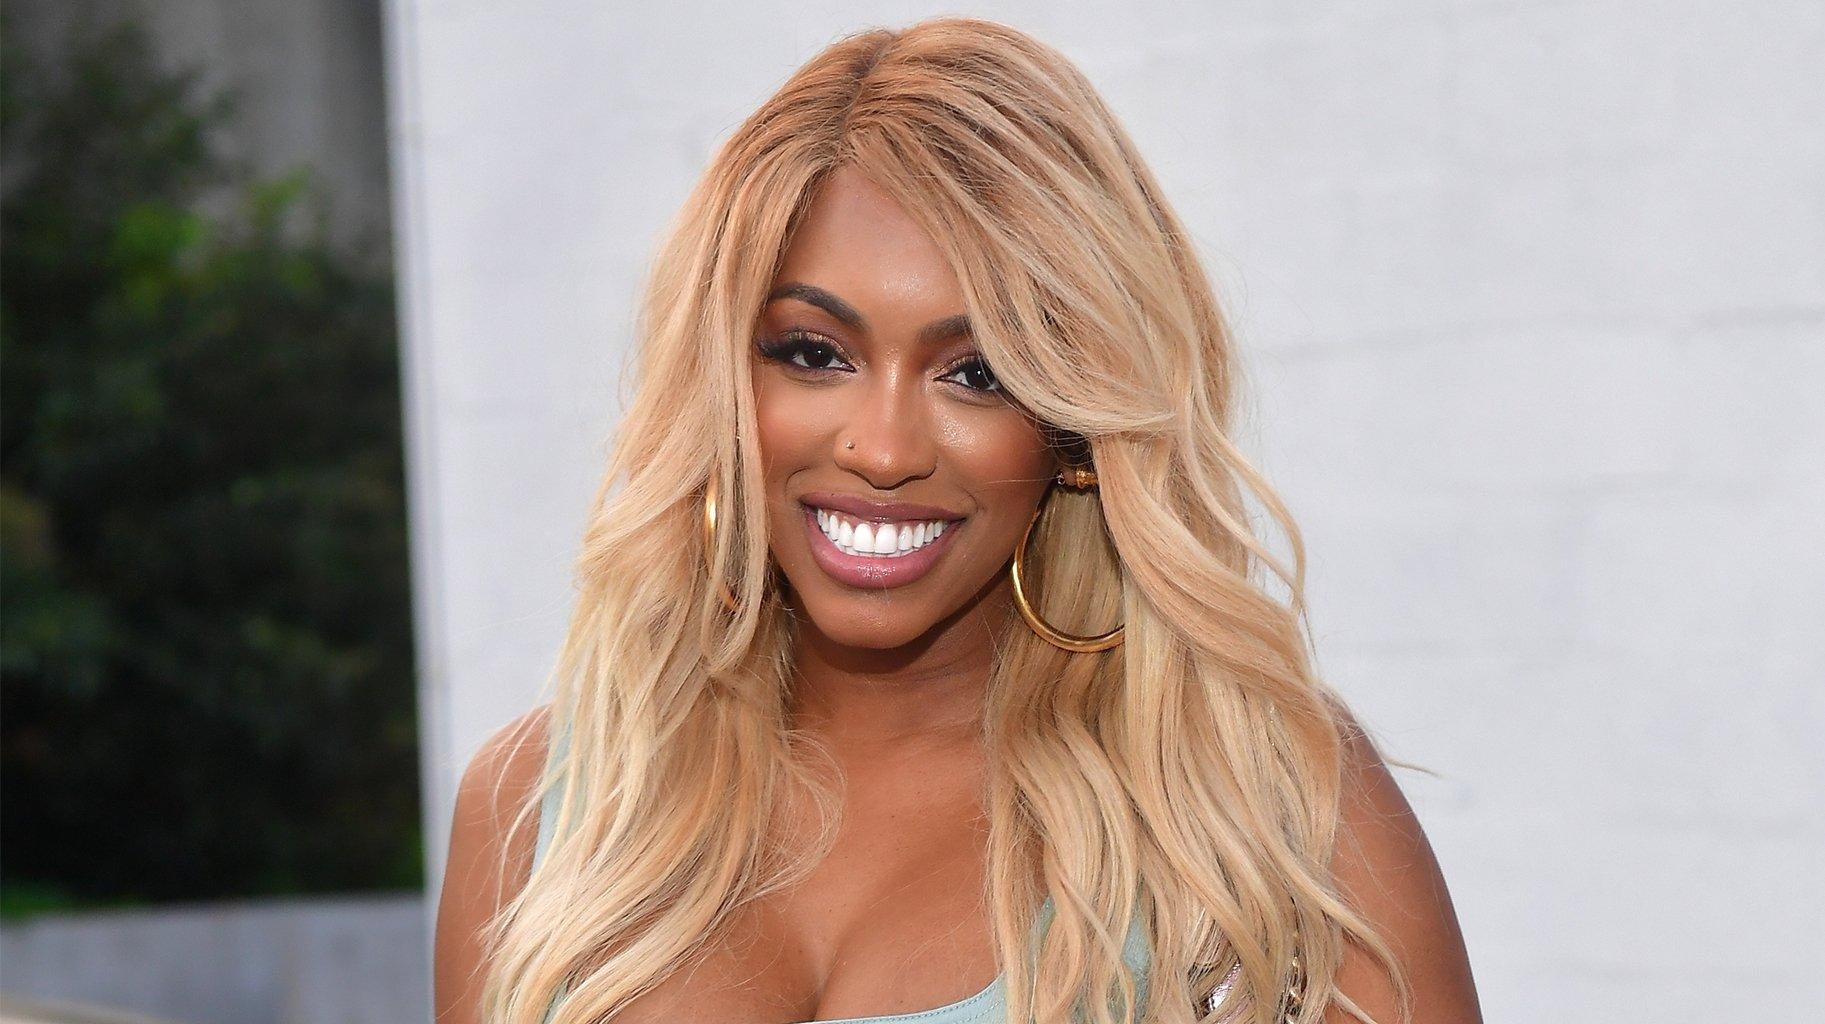 Porsha Williams Asks Fans To Vote - See Her Message